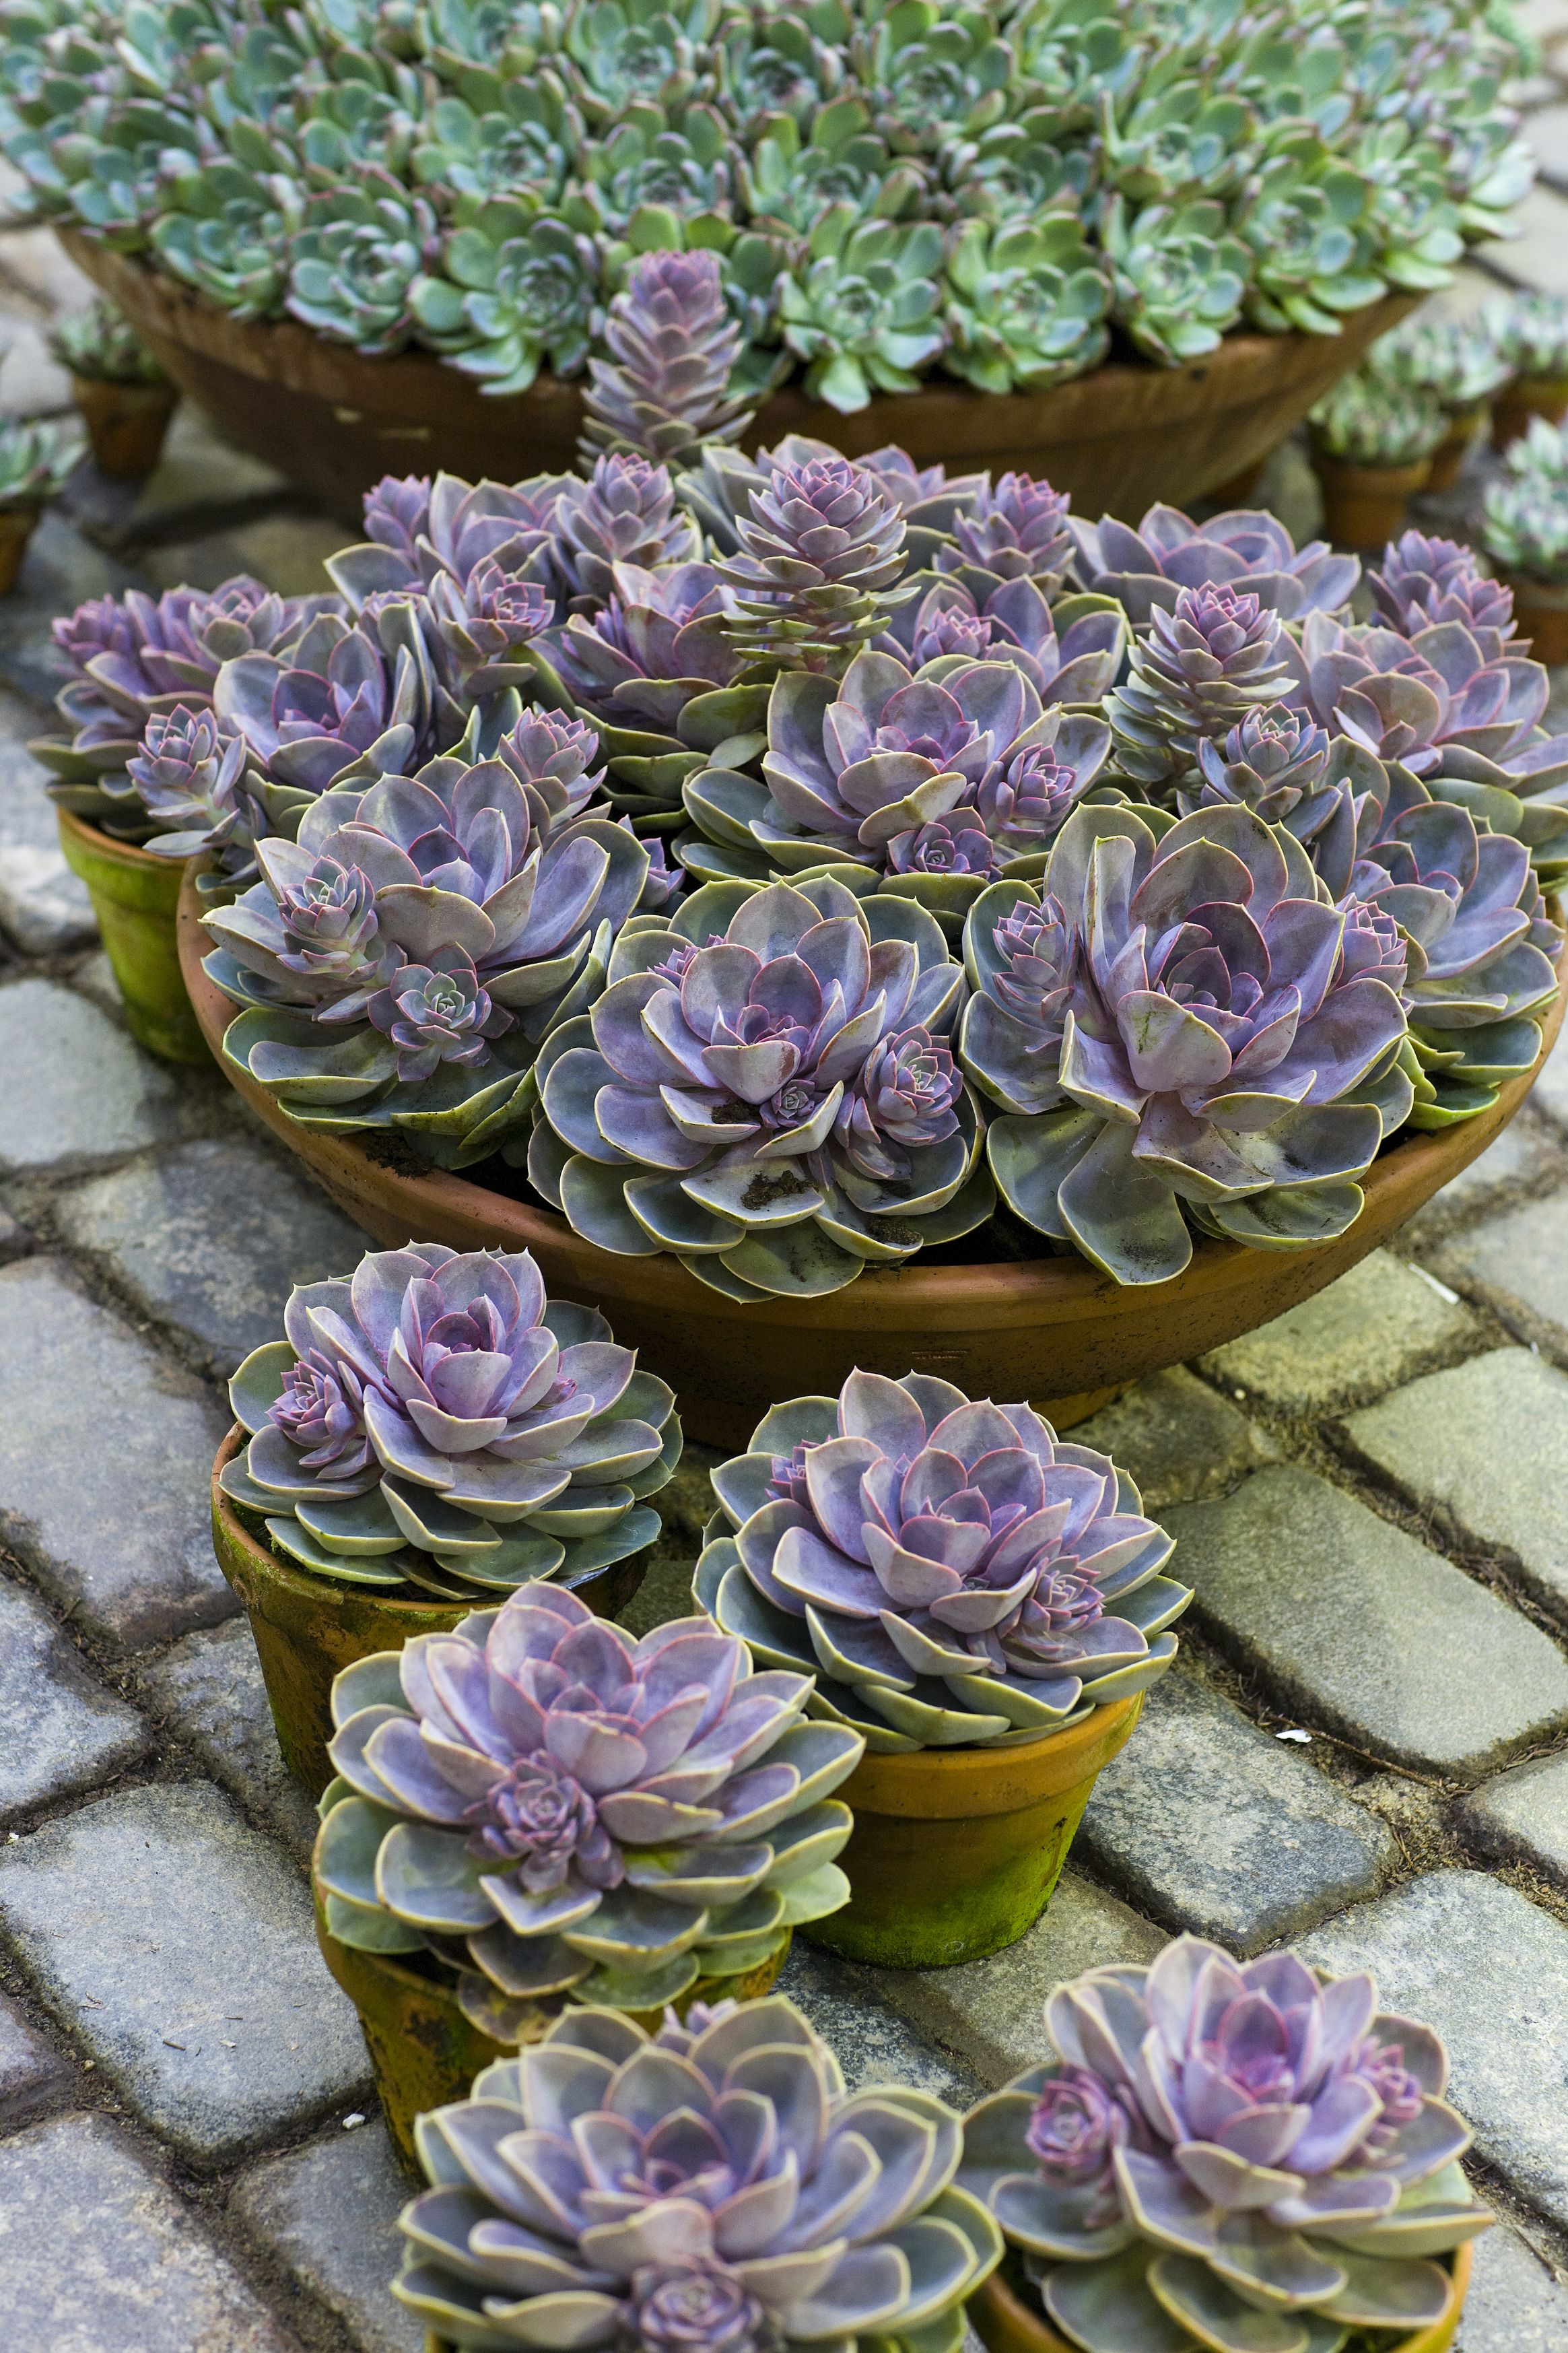 Echeveria 'Perle von Nurnberg' Must have some of these. Get on it Beth. You are the woman that can find these